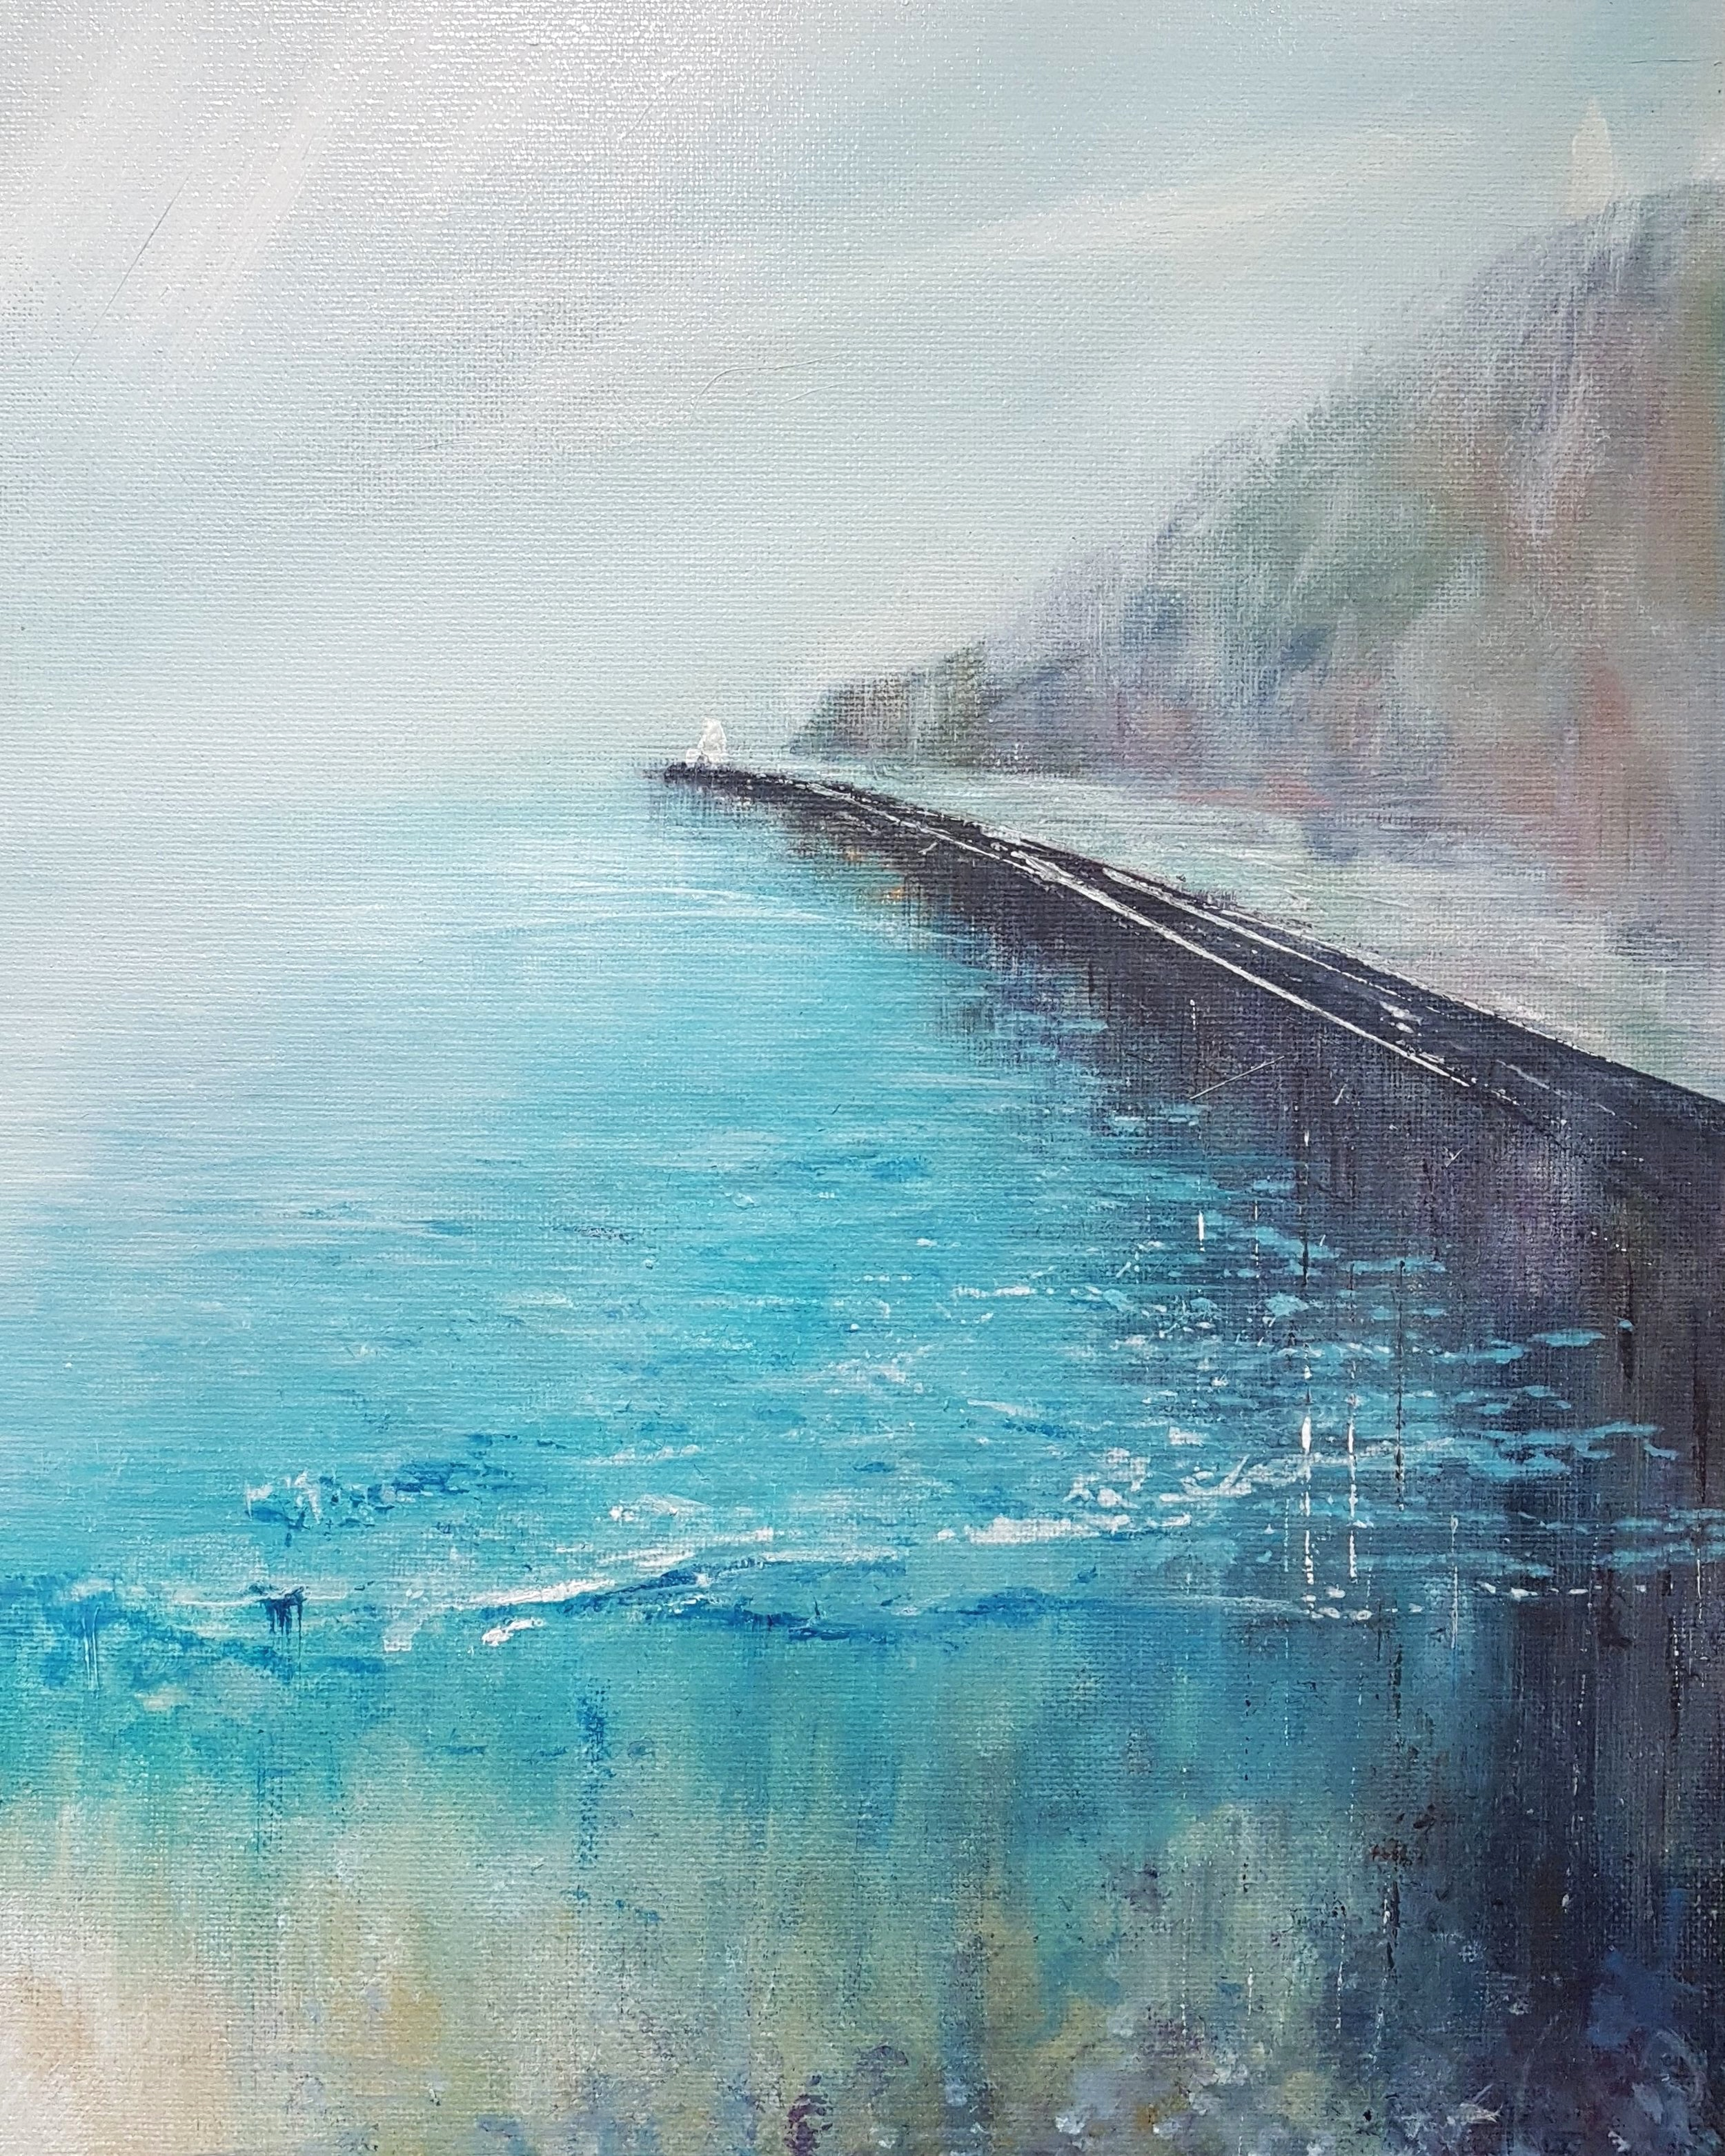 Portreath Harbour Wall - Limited Edition size of 5025cm x 35.5cm£45